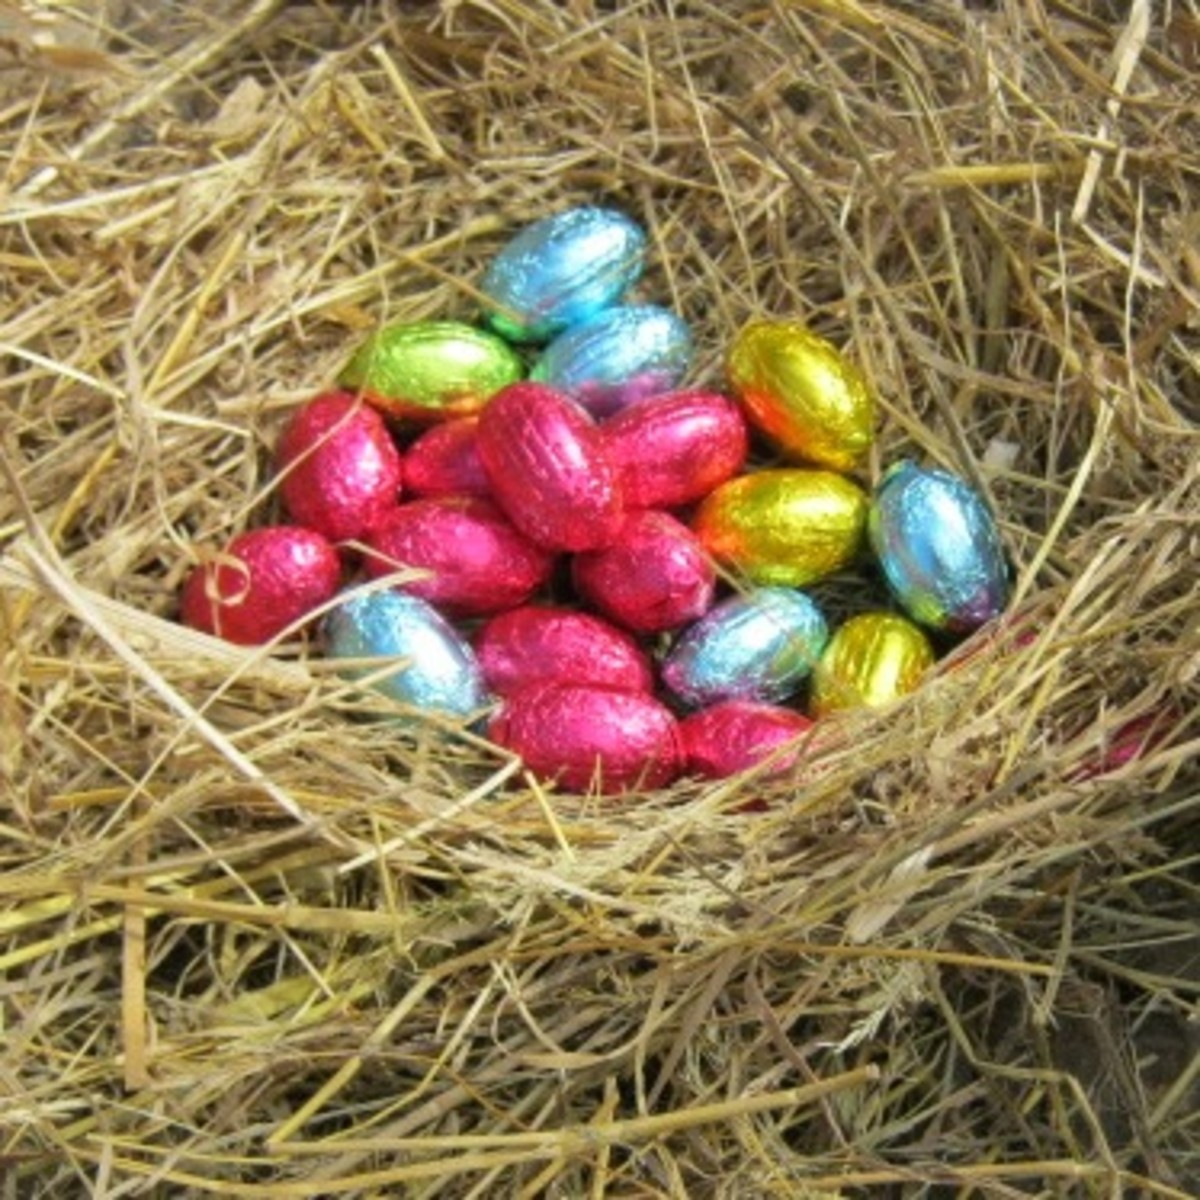 I put a mini-egg with every clue and gave the children a little basket each to collect them